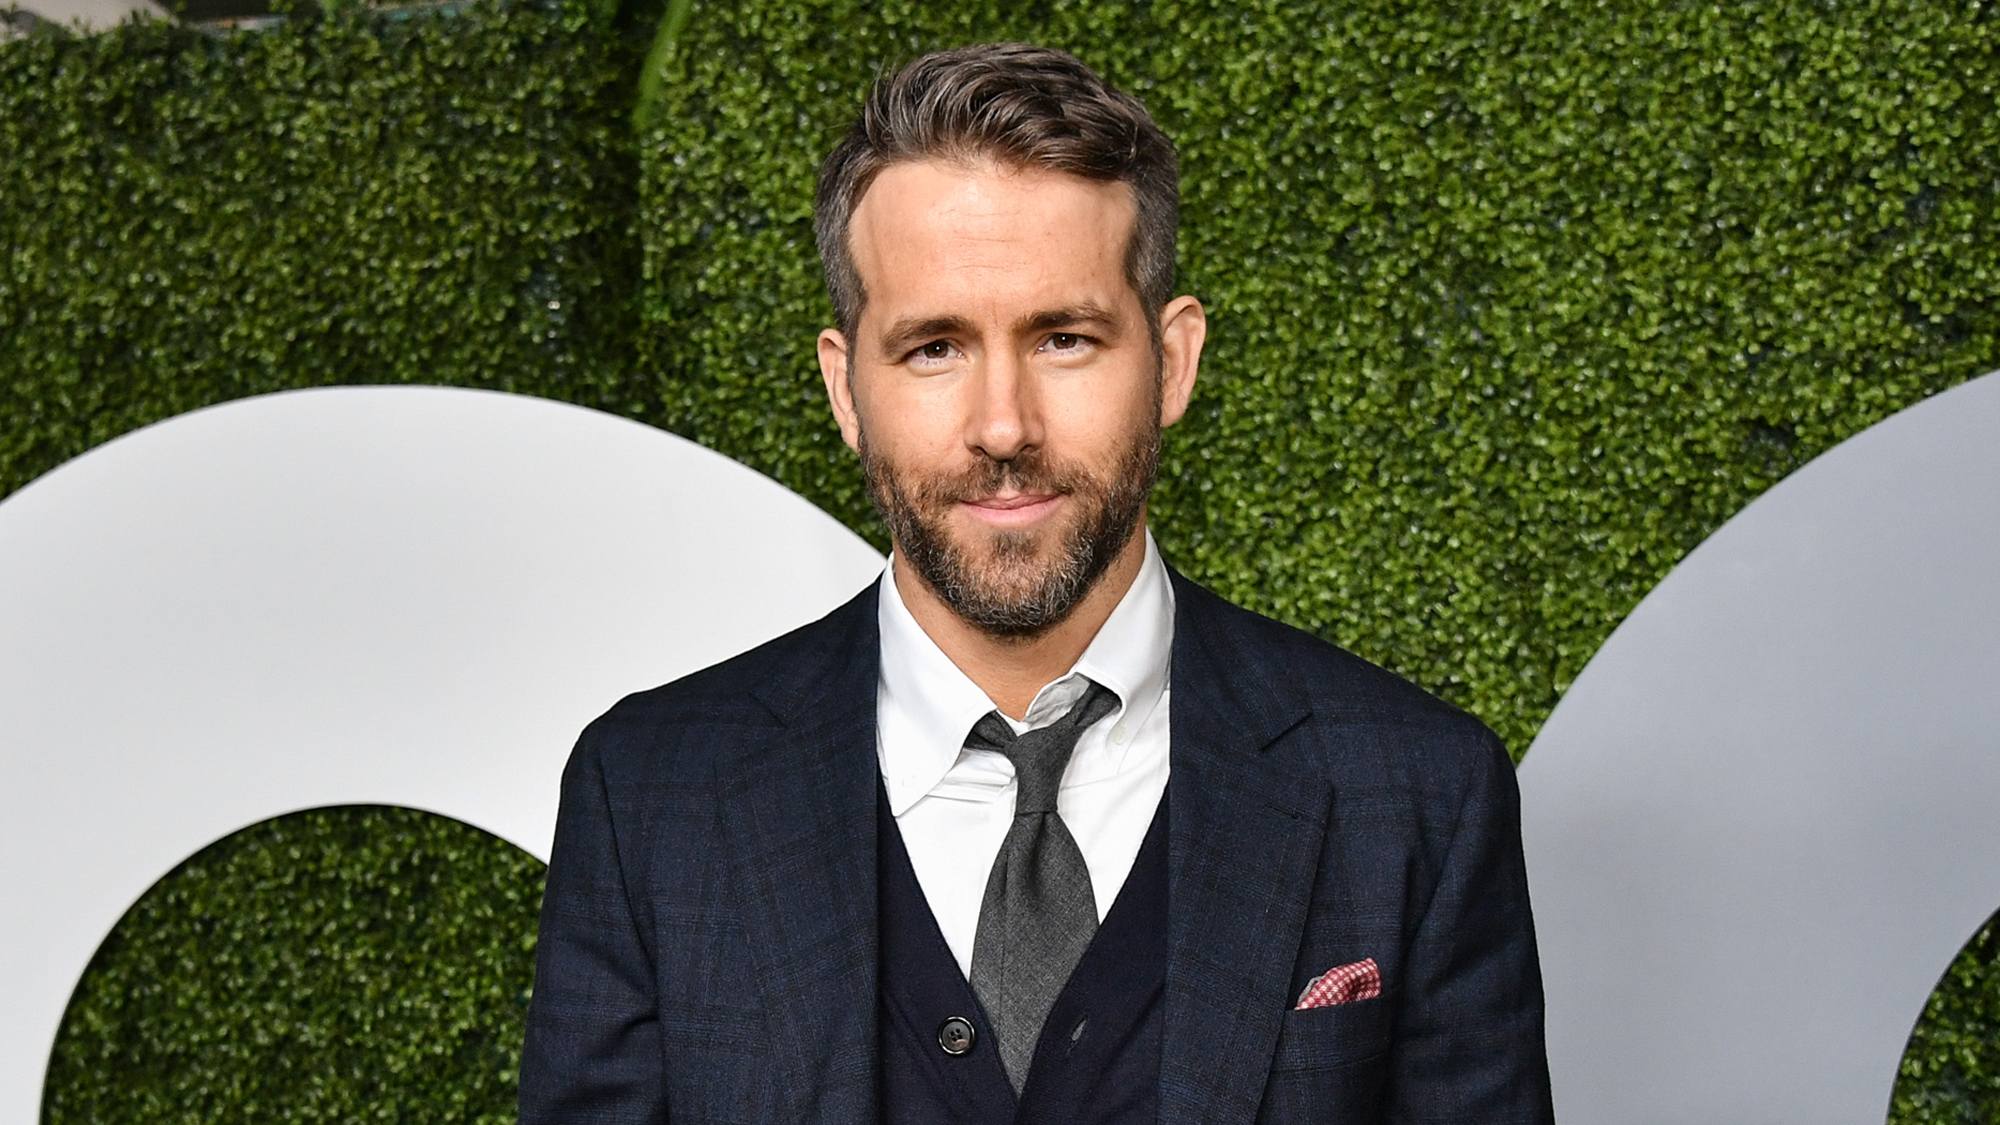 Ryan Reynolds announced his new gin company in the best way possible